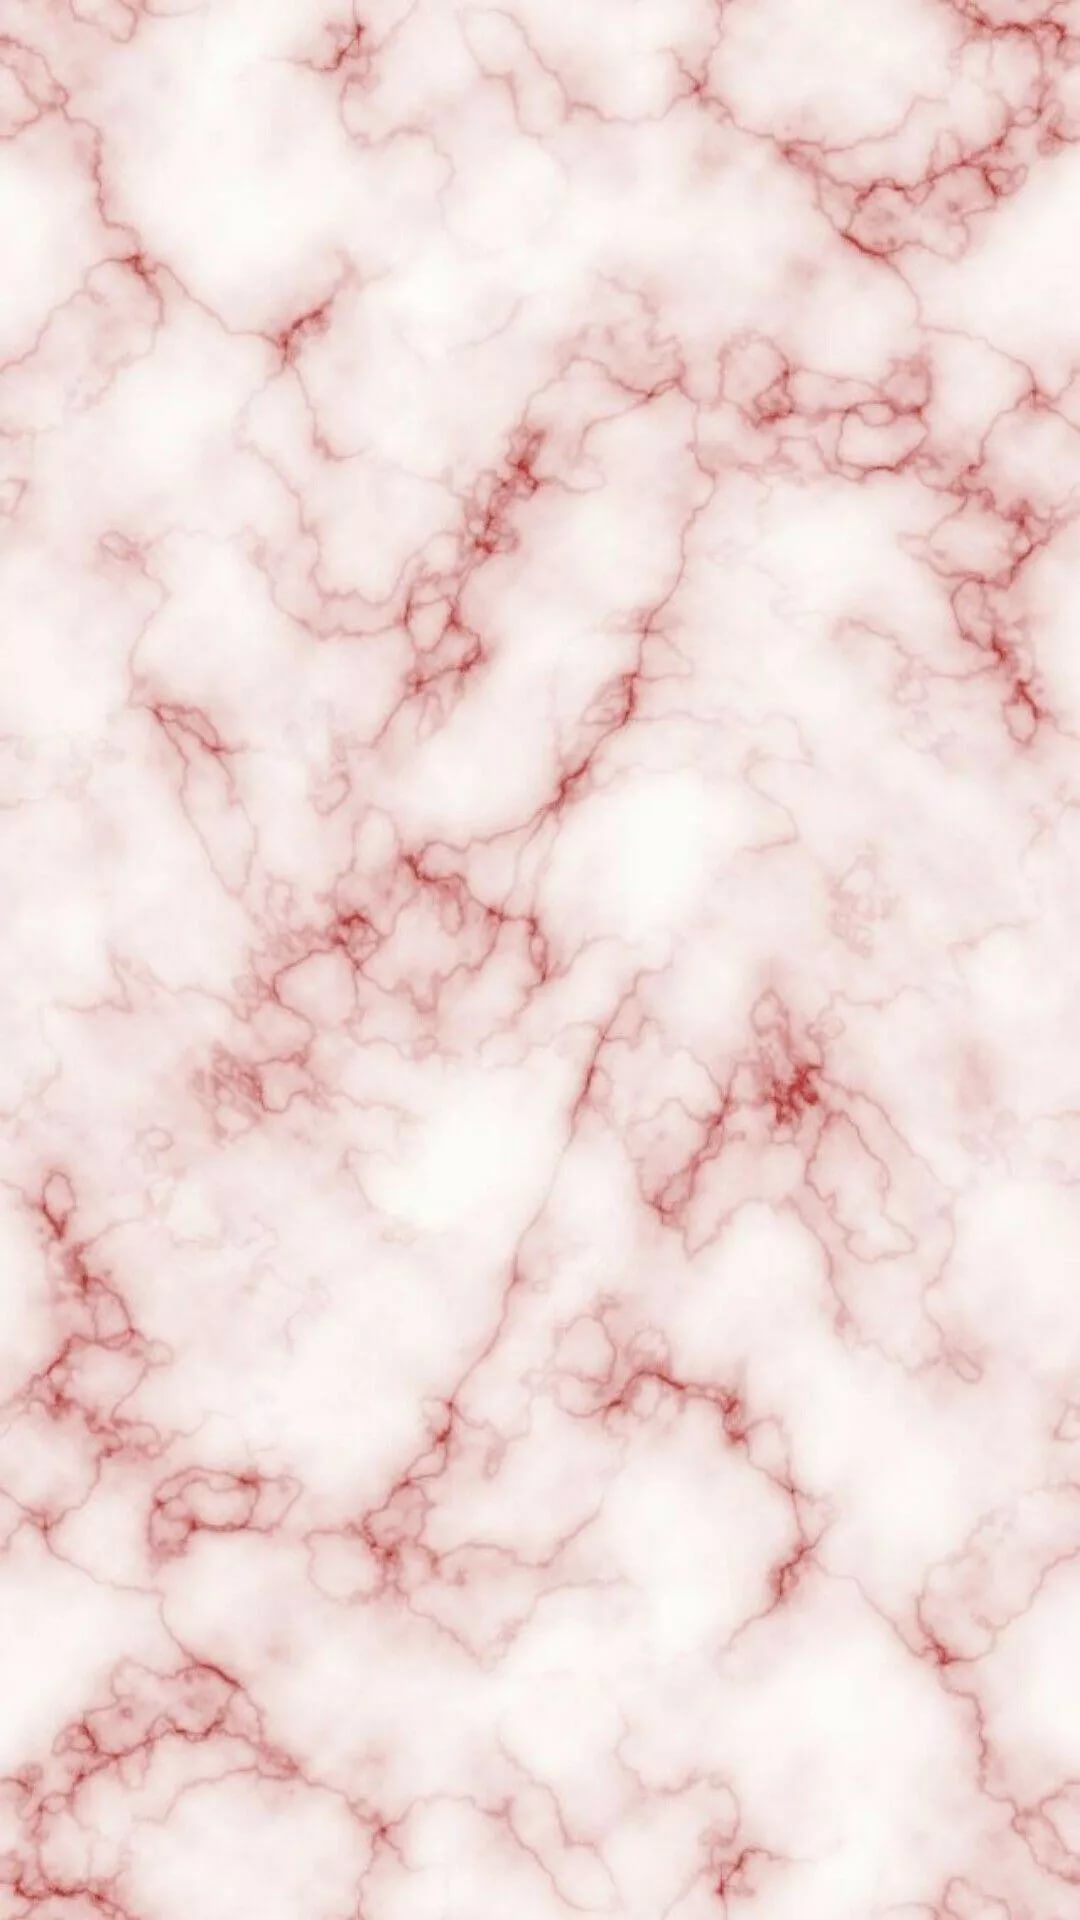 Pink Marble Iphone 6 Wallpaper Aesthetic Rose Gold Iphone 1080x1920 Download Hd Wallpaper Wallpapertip